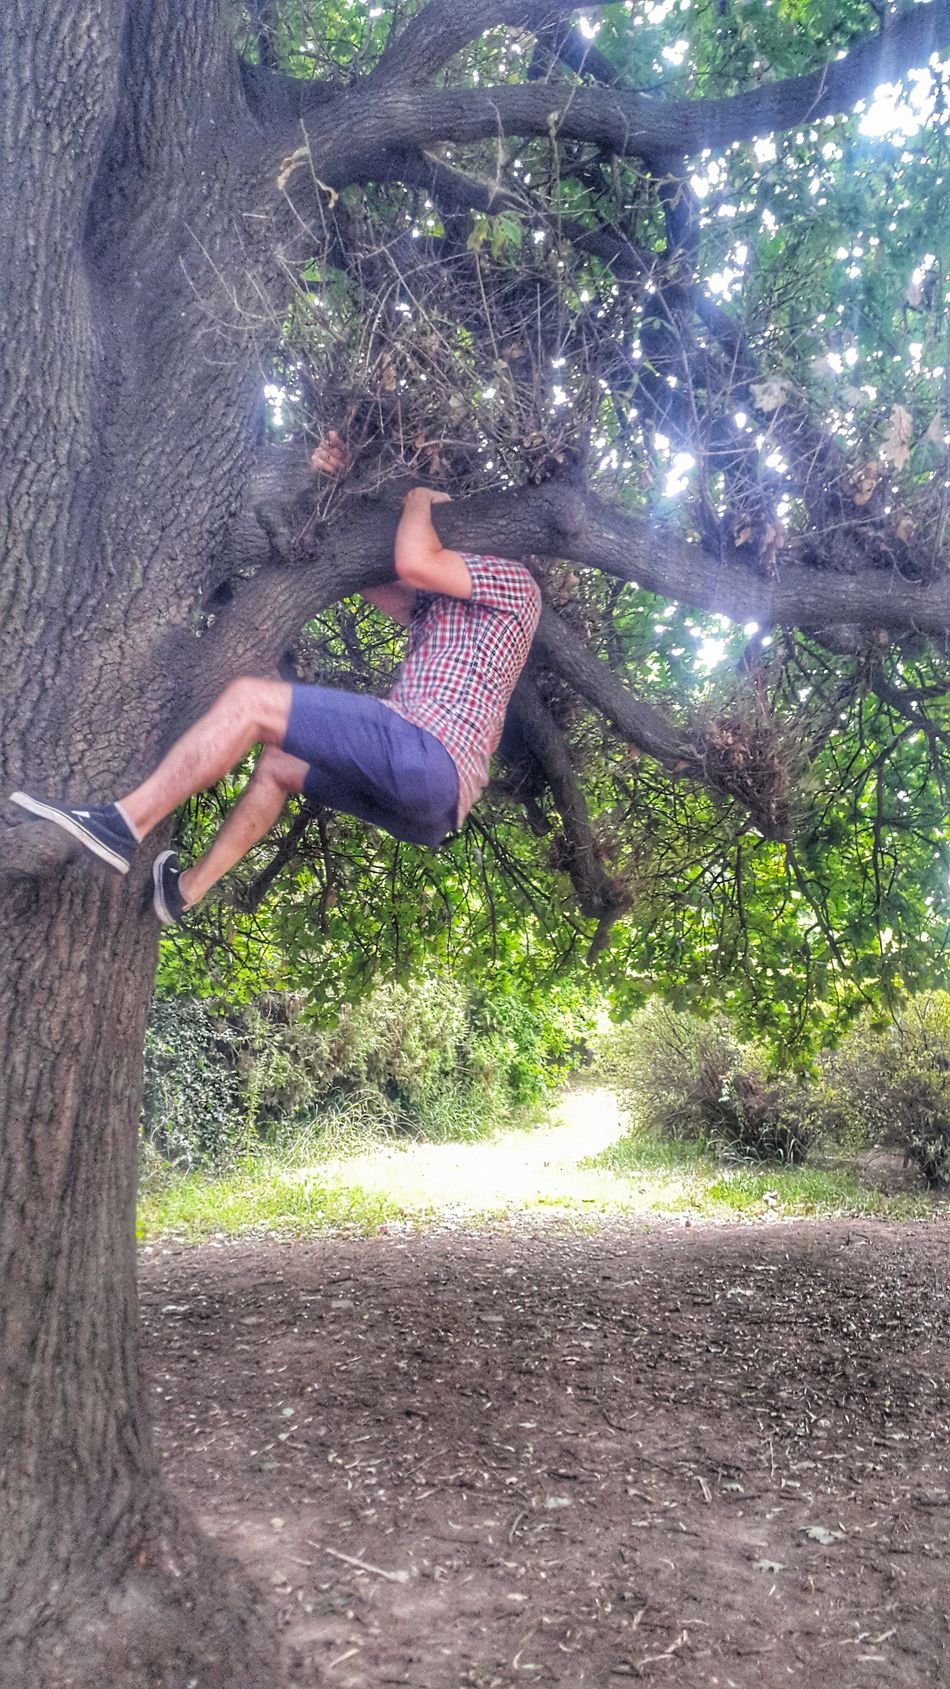 Climbing a tree part 2 Peoplephotography People Photography People Street Photo Streetphotography Buenos Aires, Argentina  Street Photography Climbing A Tree Climbing Climbing Trees EyeEm Buenos Aires